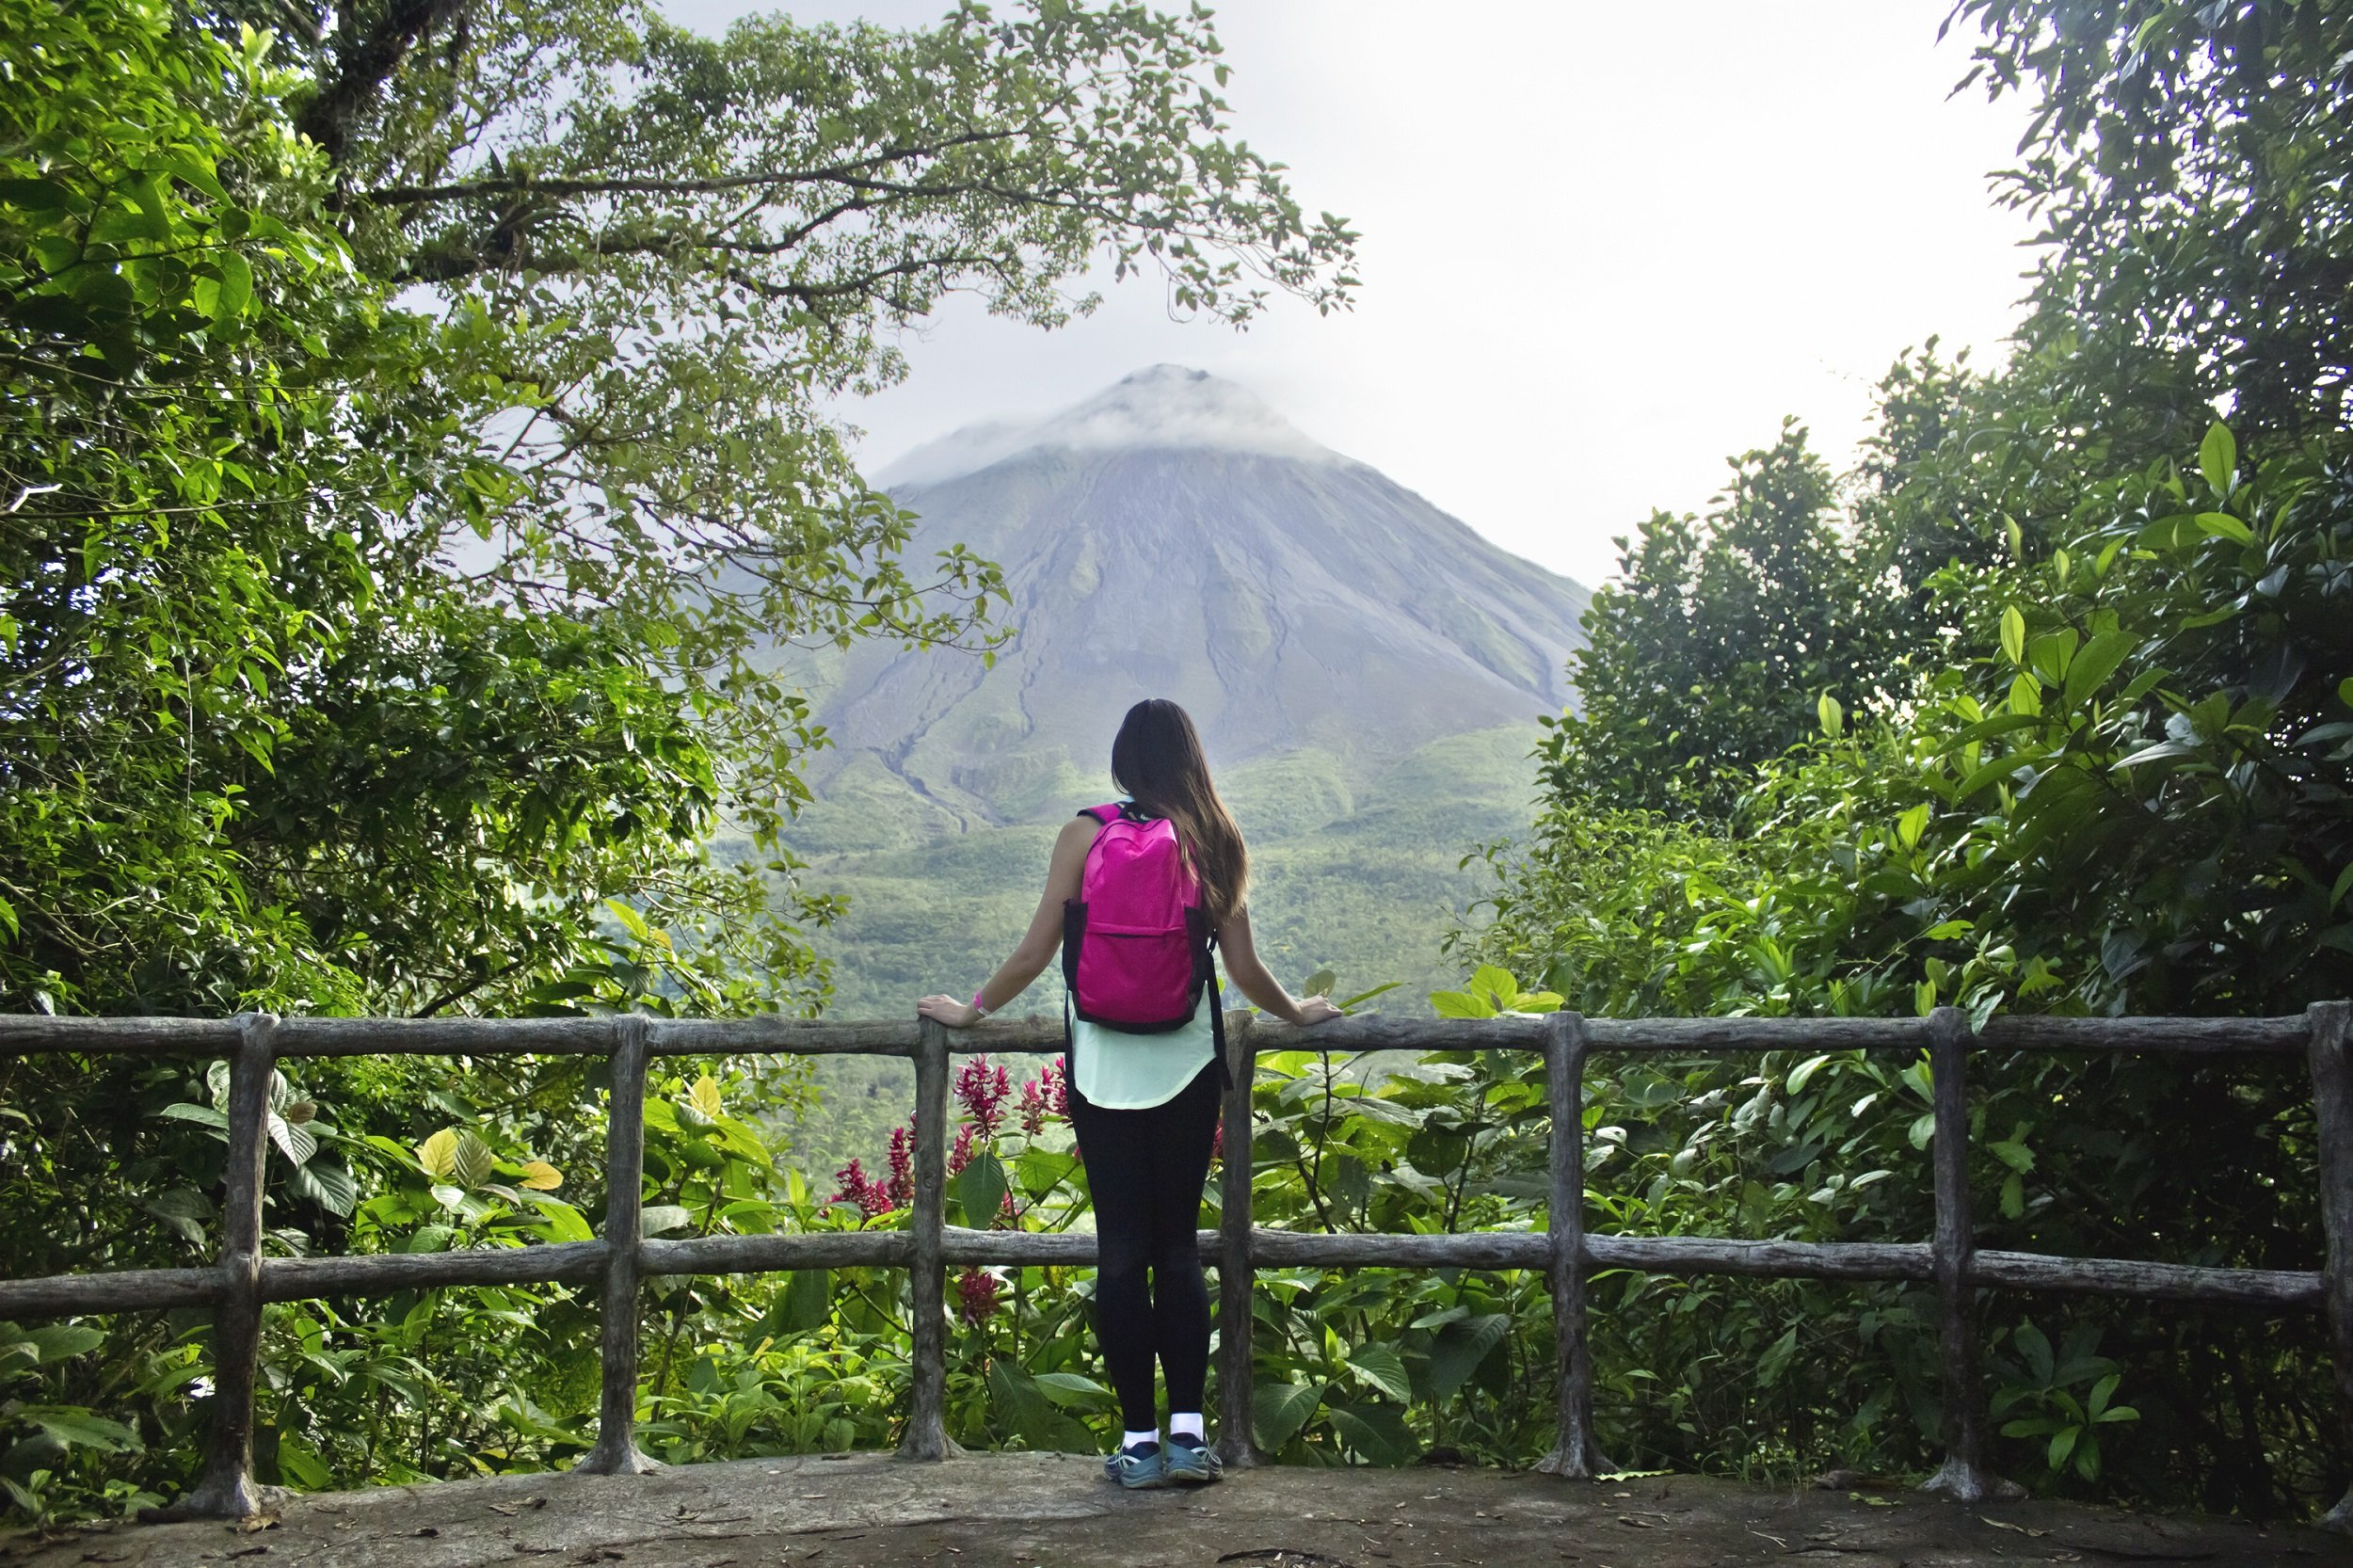 La-fortuna-waterfall-and-arenal-volcano-hiking-tour-from-la-fortuna-arenal